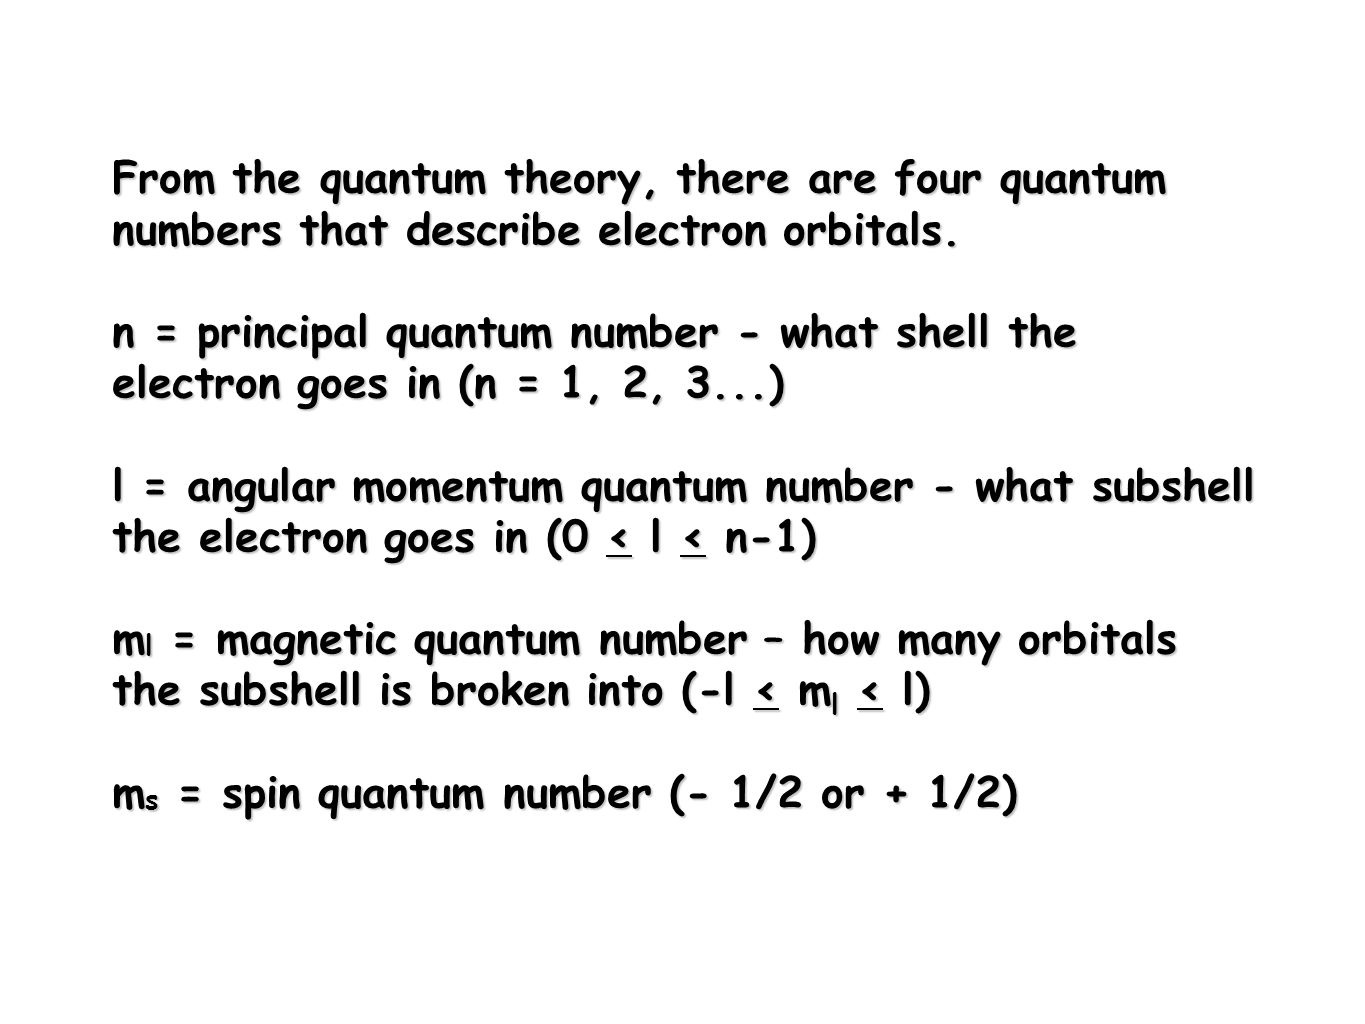 From the quantum theory, there are four quantum numbers that describe electron orbitals.